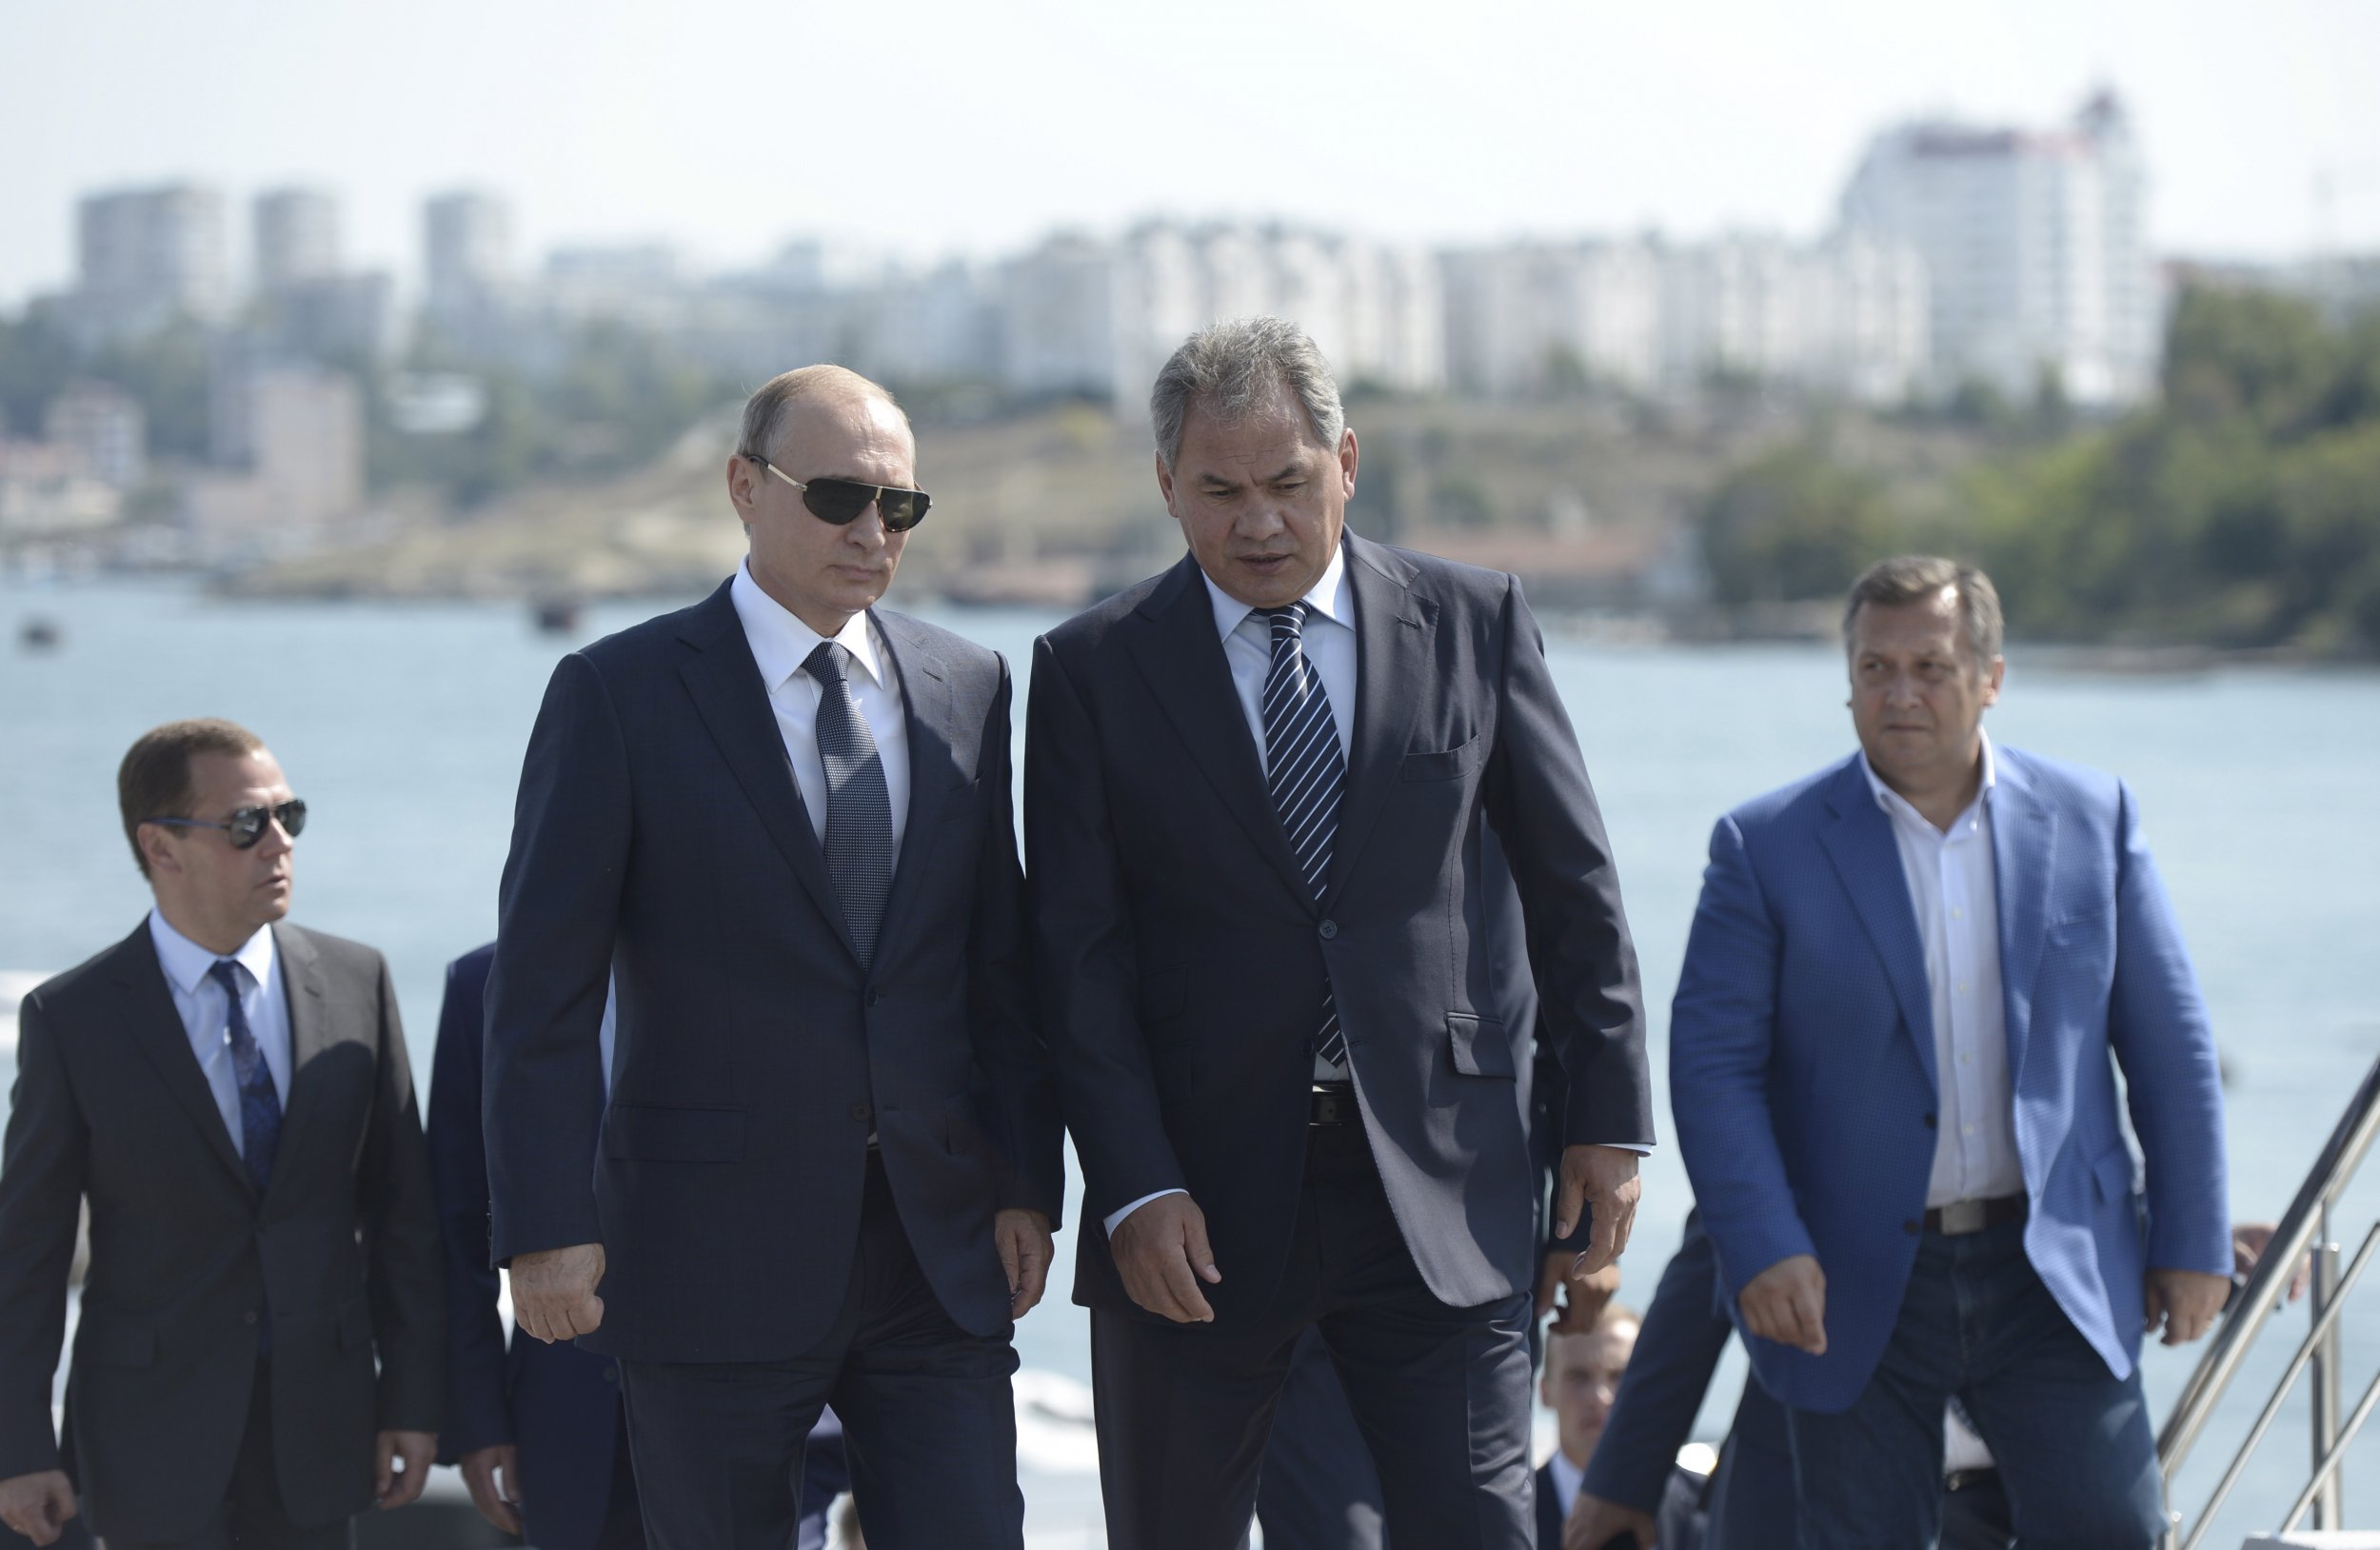 Putin and Shoygu